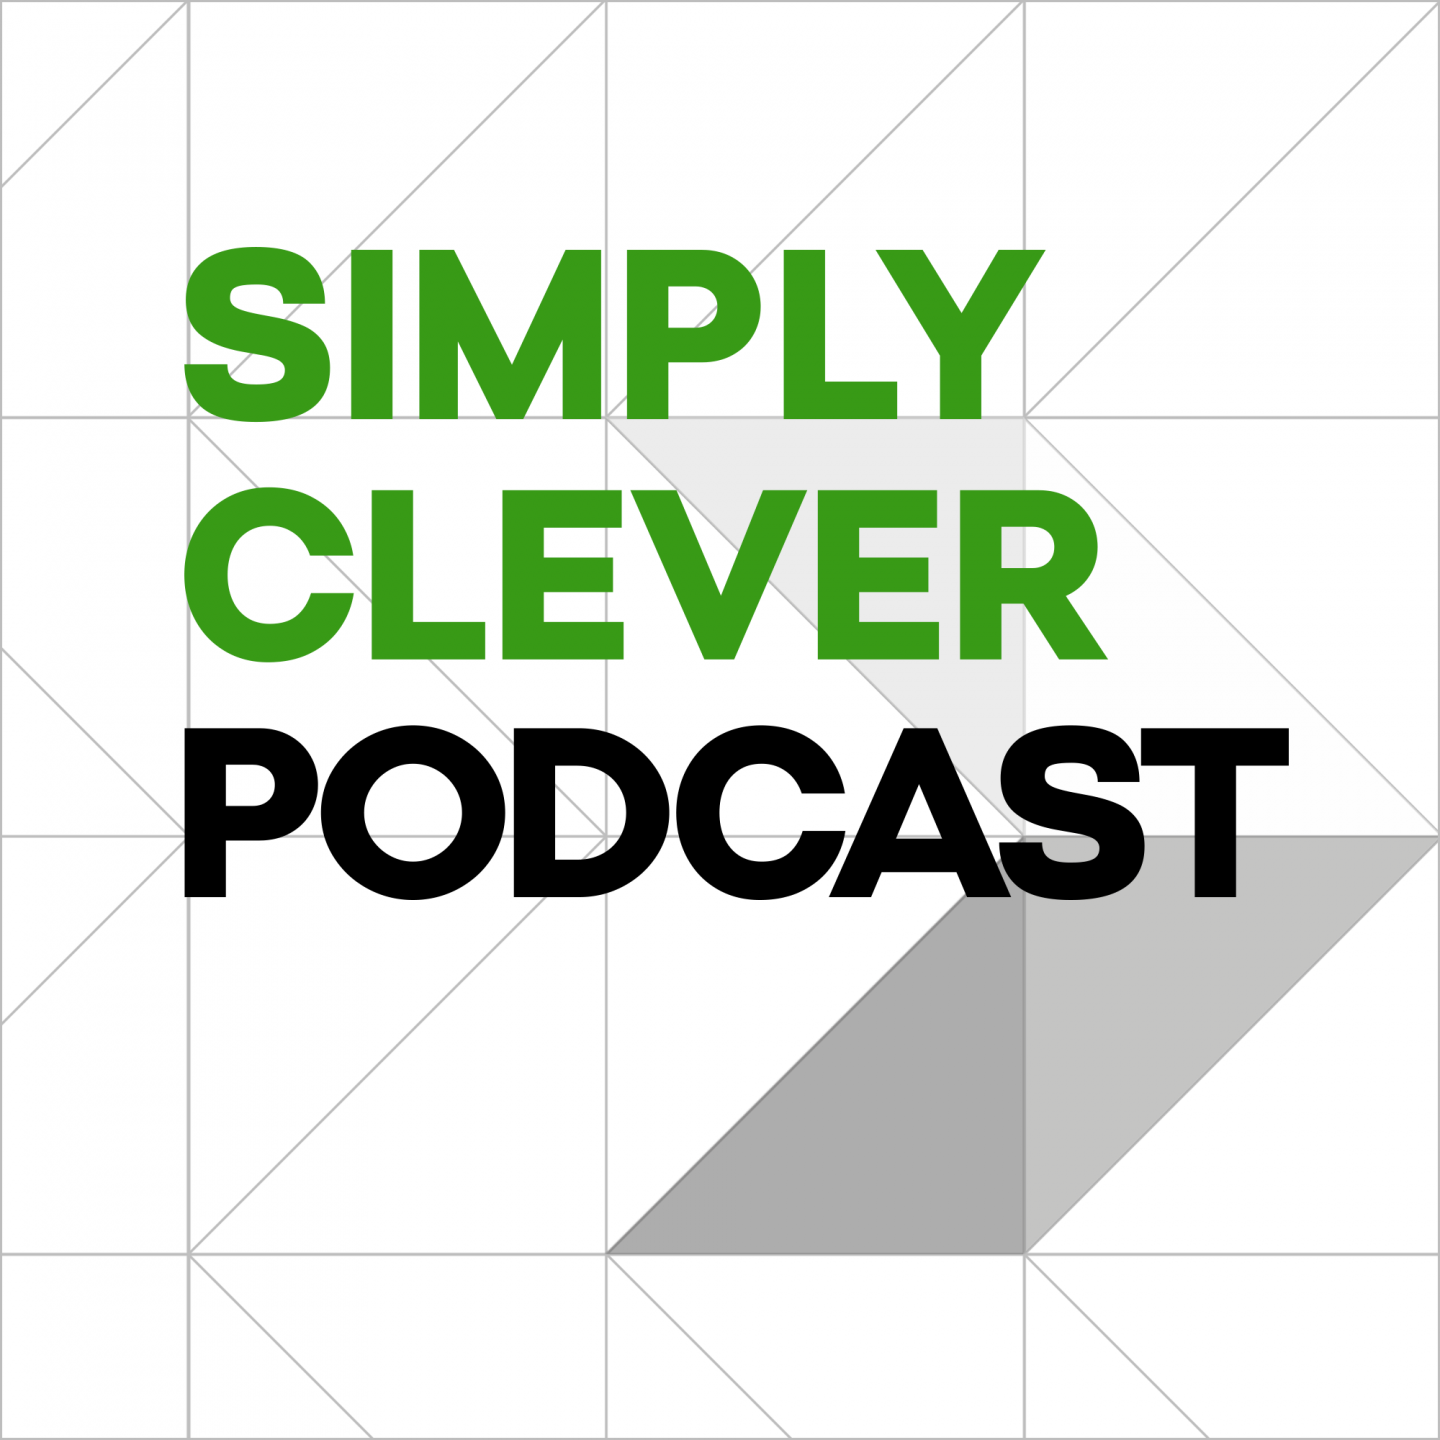 210505-simply-clever-podcast-cover-1440x1440